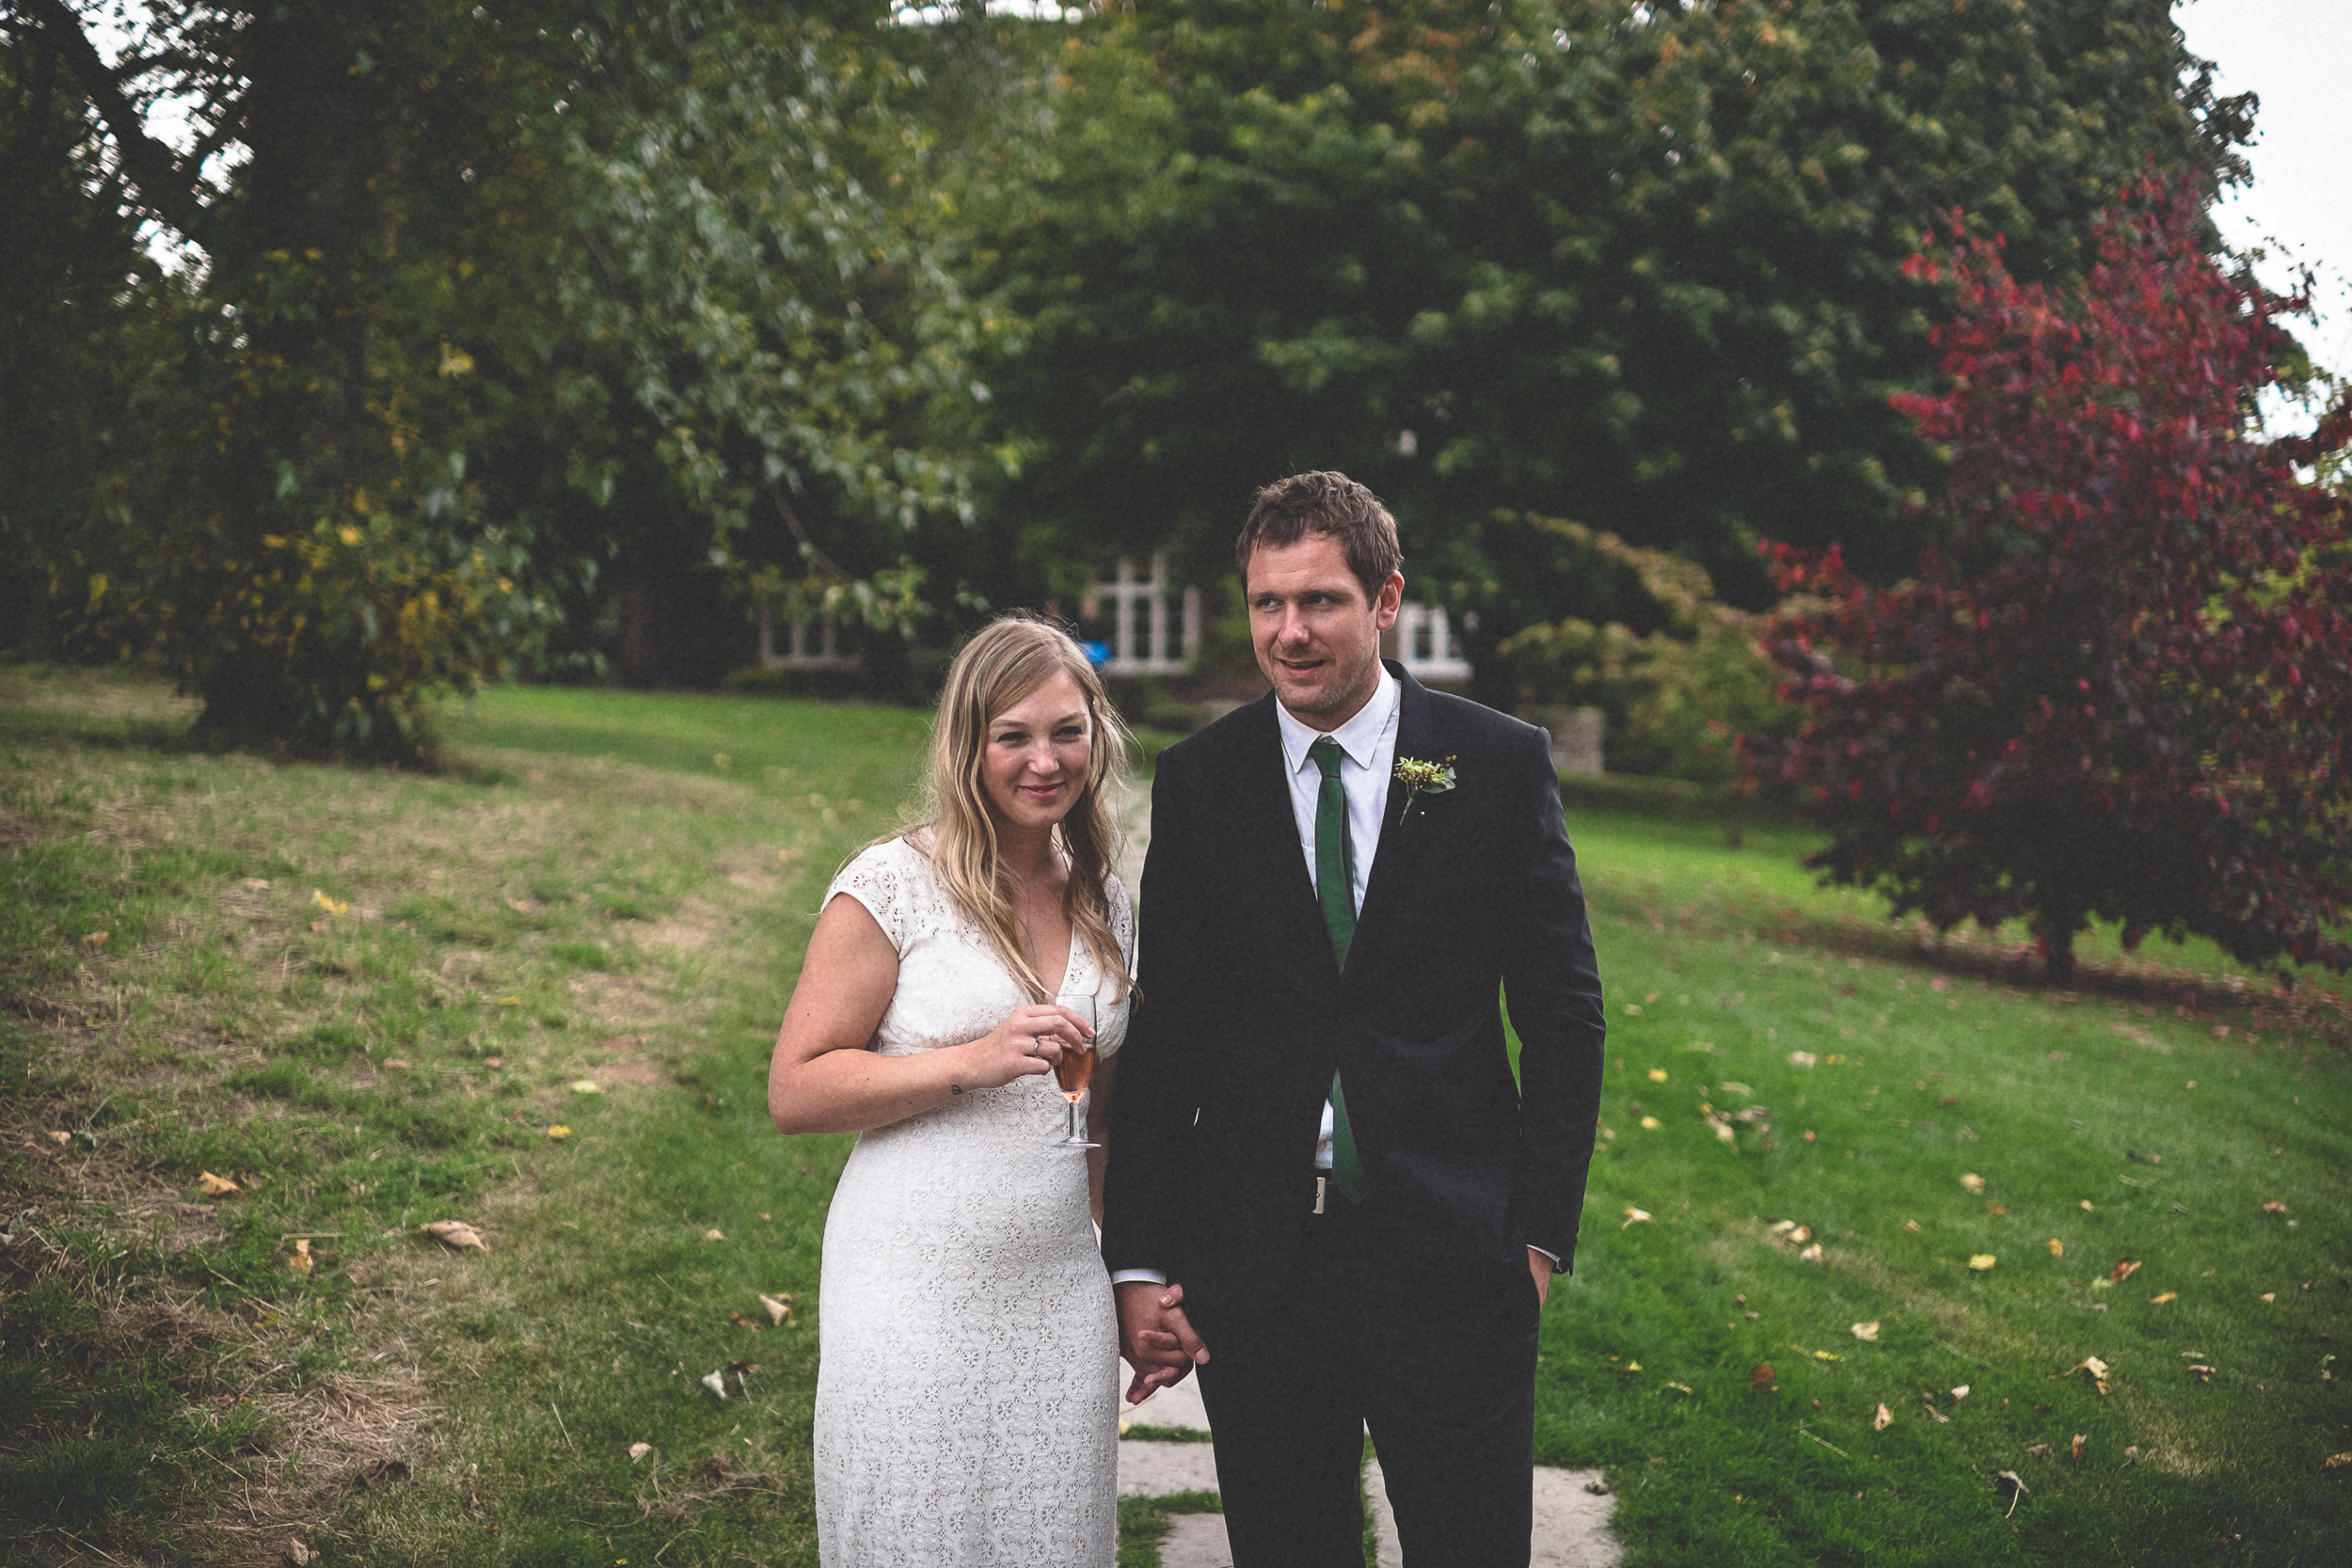 dewsall_Court_wedding_photography